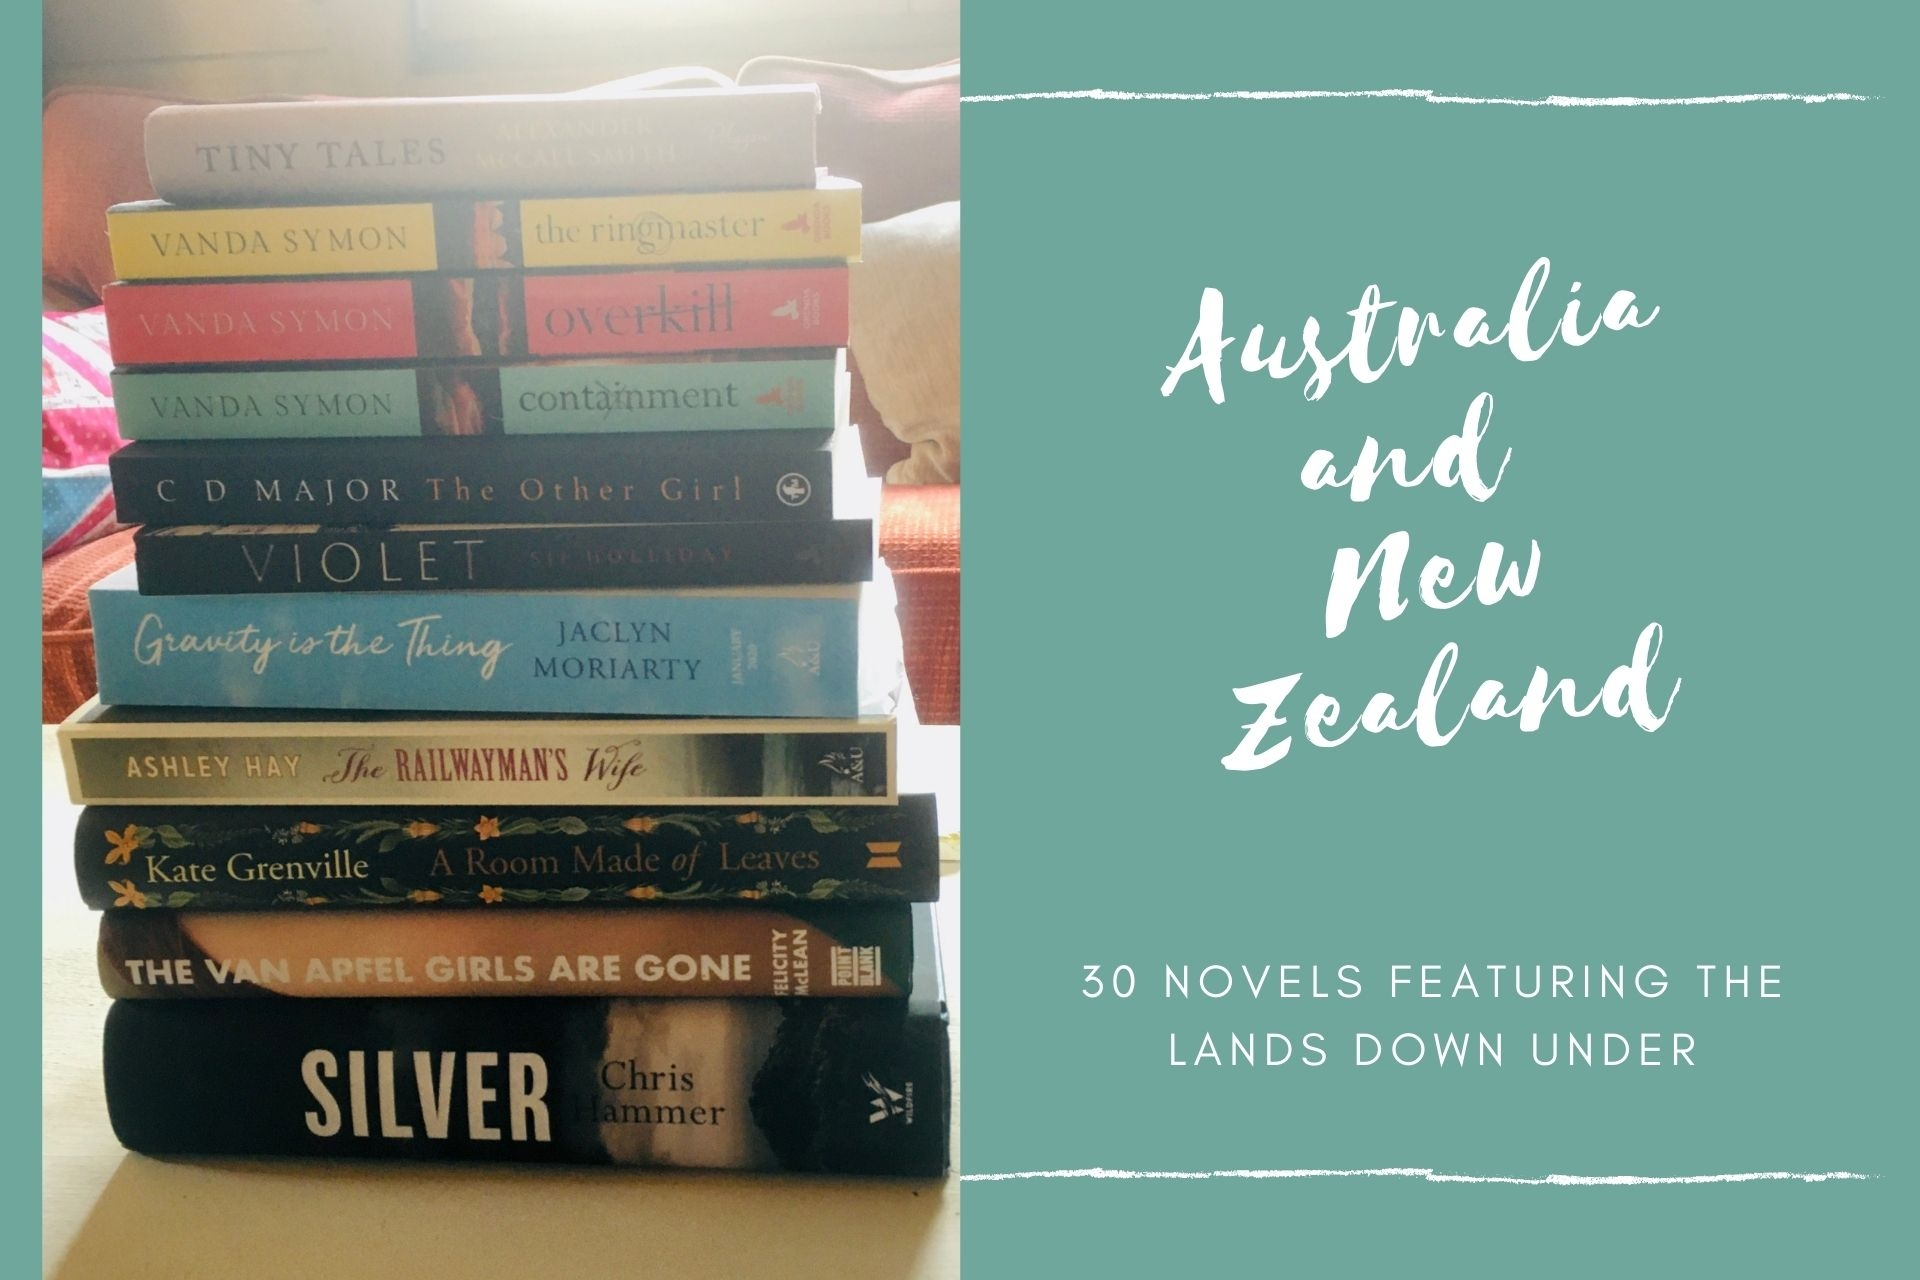 30 Novels Featuring The Lands Down Under